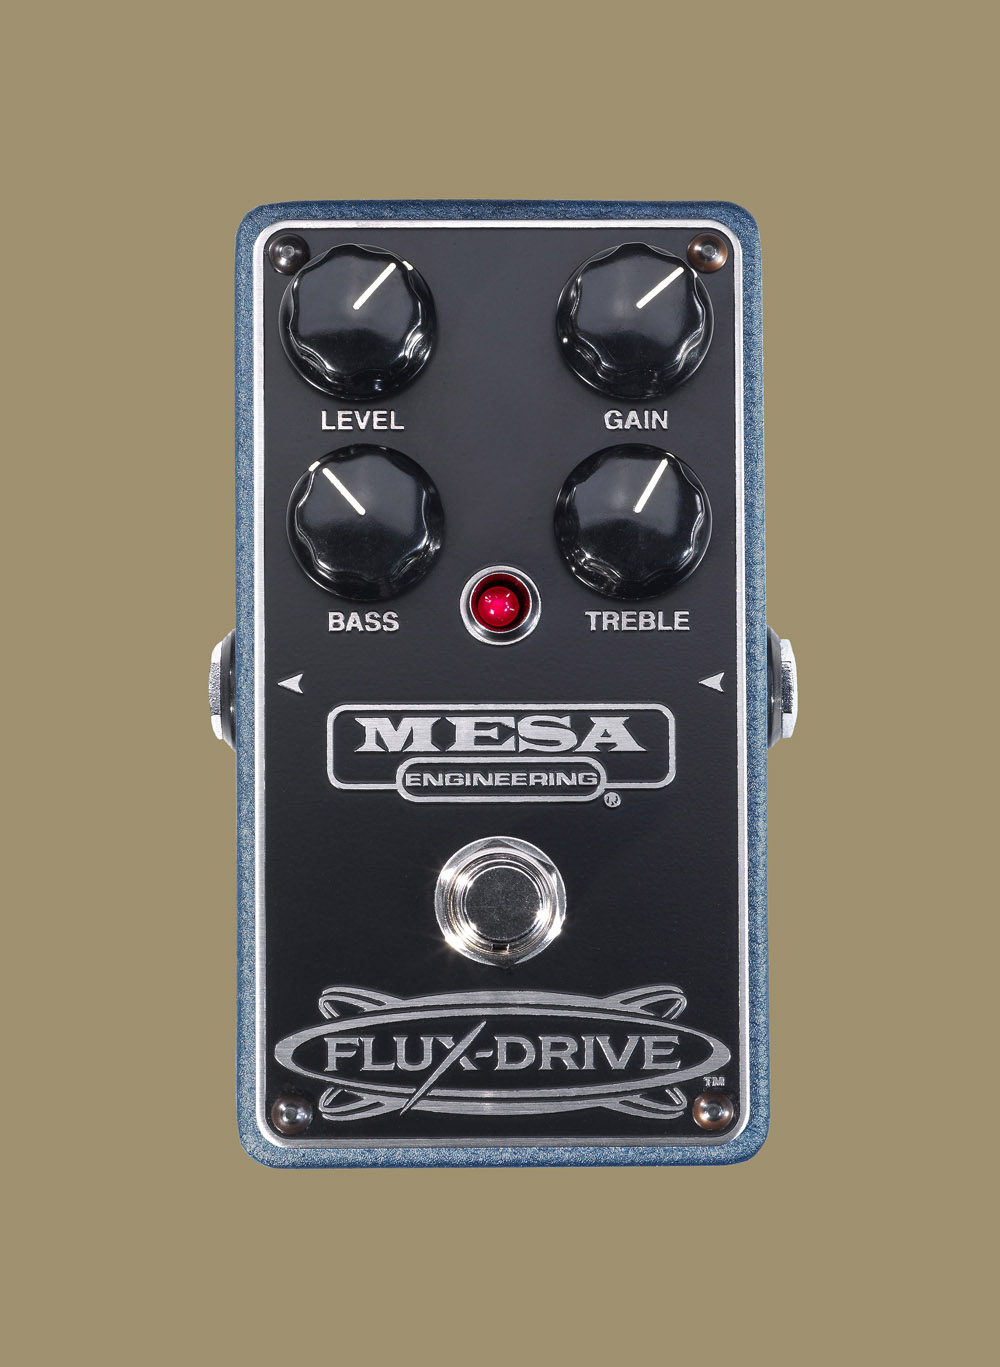 The Mesa Flux-Drive Overdrive/Distortion Pedal